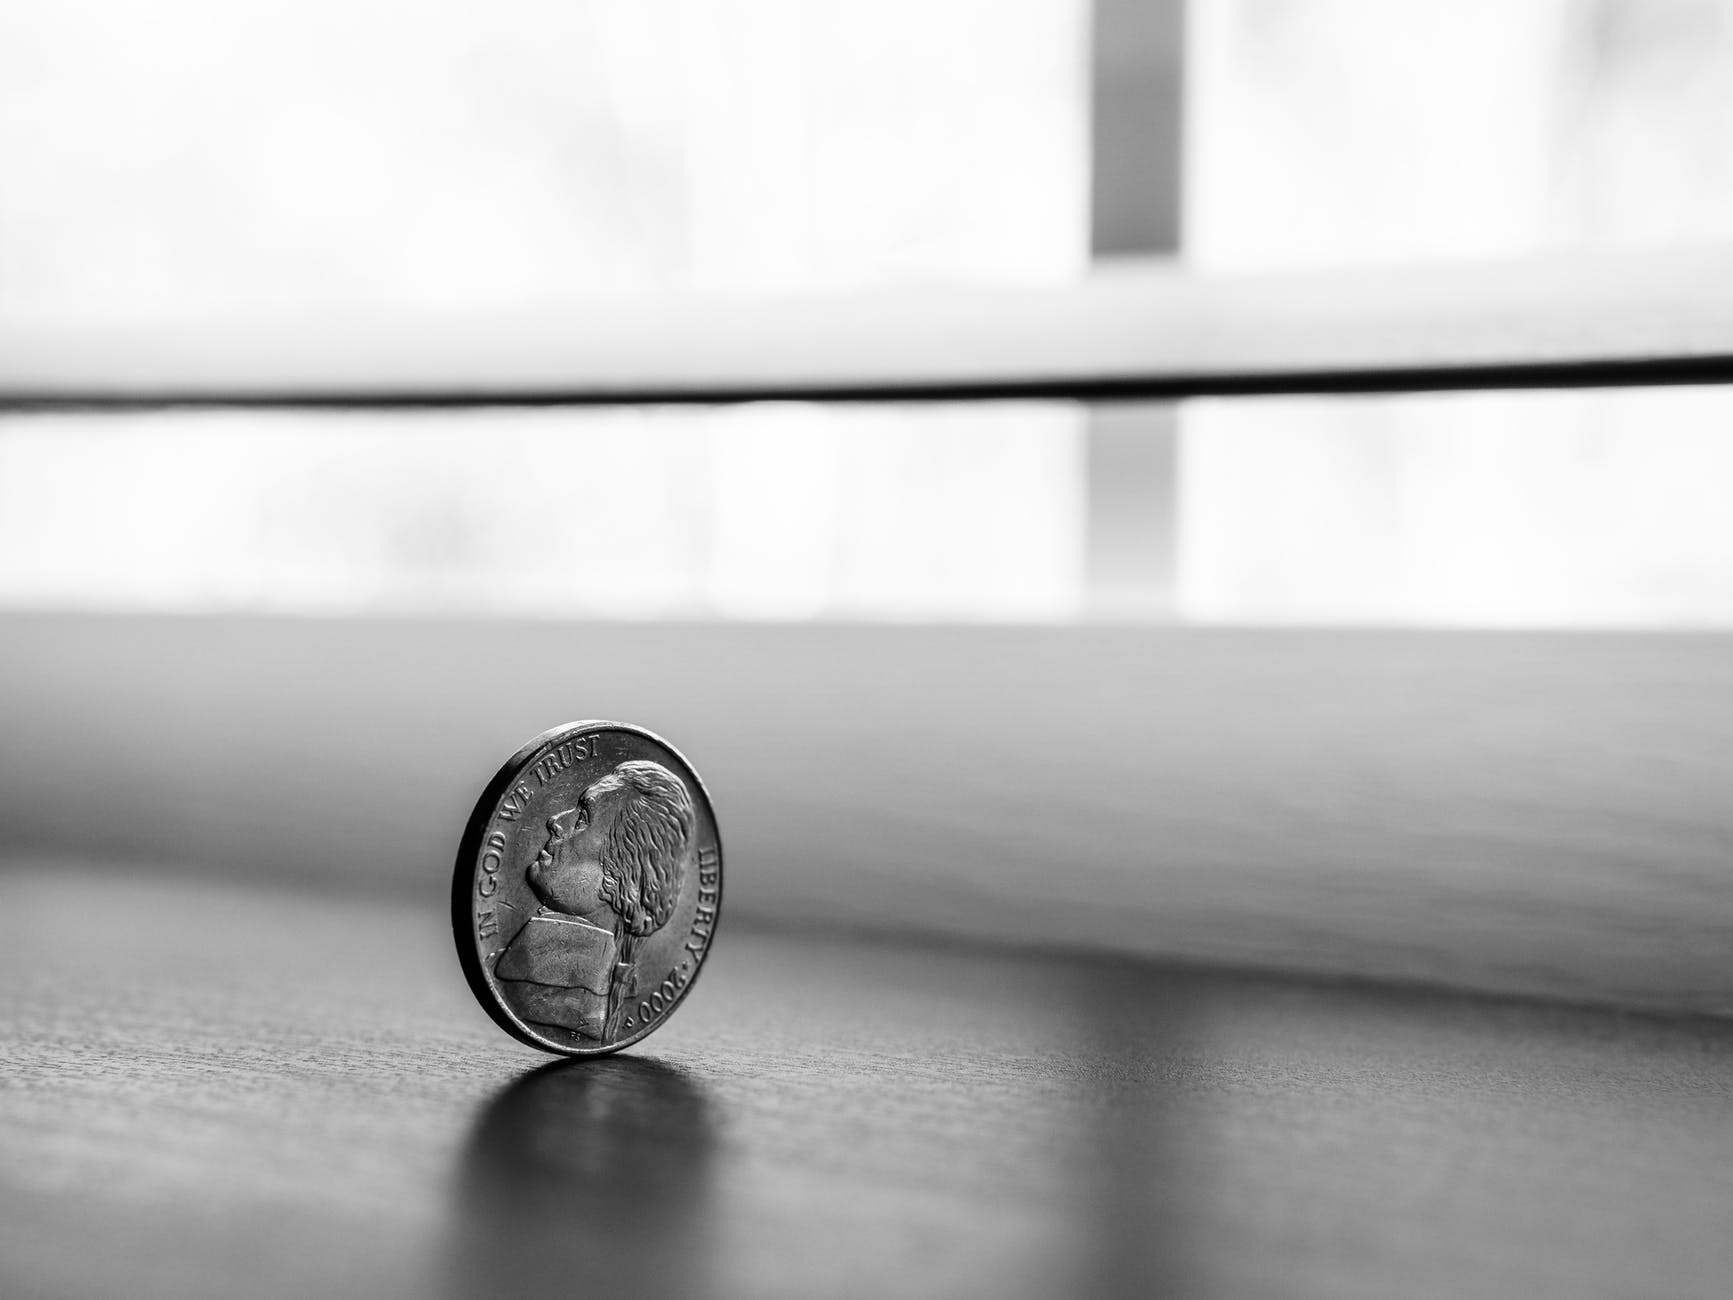 monochrome photography of round silver coin